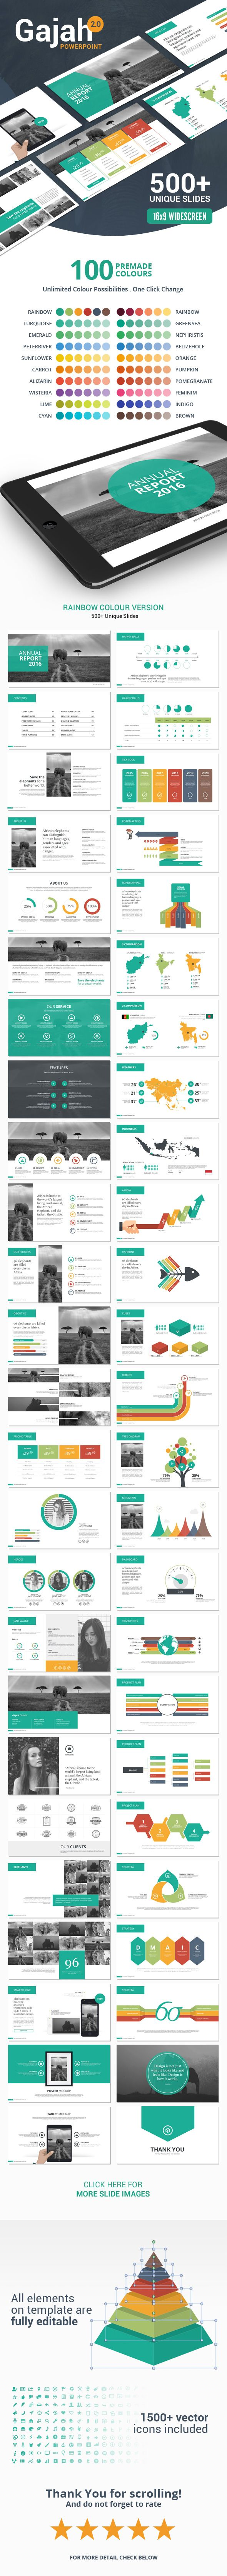 Gajah is a powerful and modern powerpoint template contains 500 total unique slides with custom and clean design for multipurpose presentation business or personal use, such a creative industry, technology, finance, etc. All elements are editable from a shape to colour no need another software to edit it, all presentations include an animated slide and transitions.